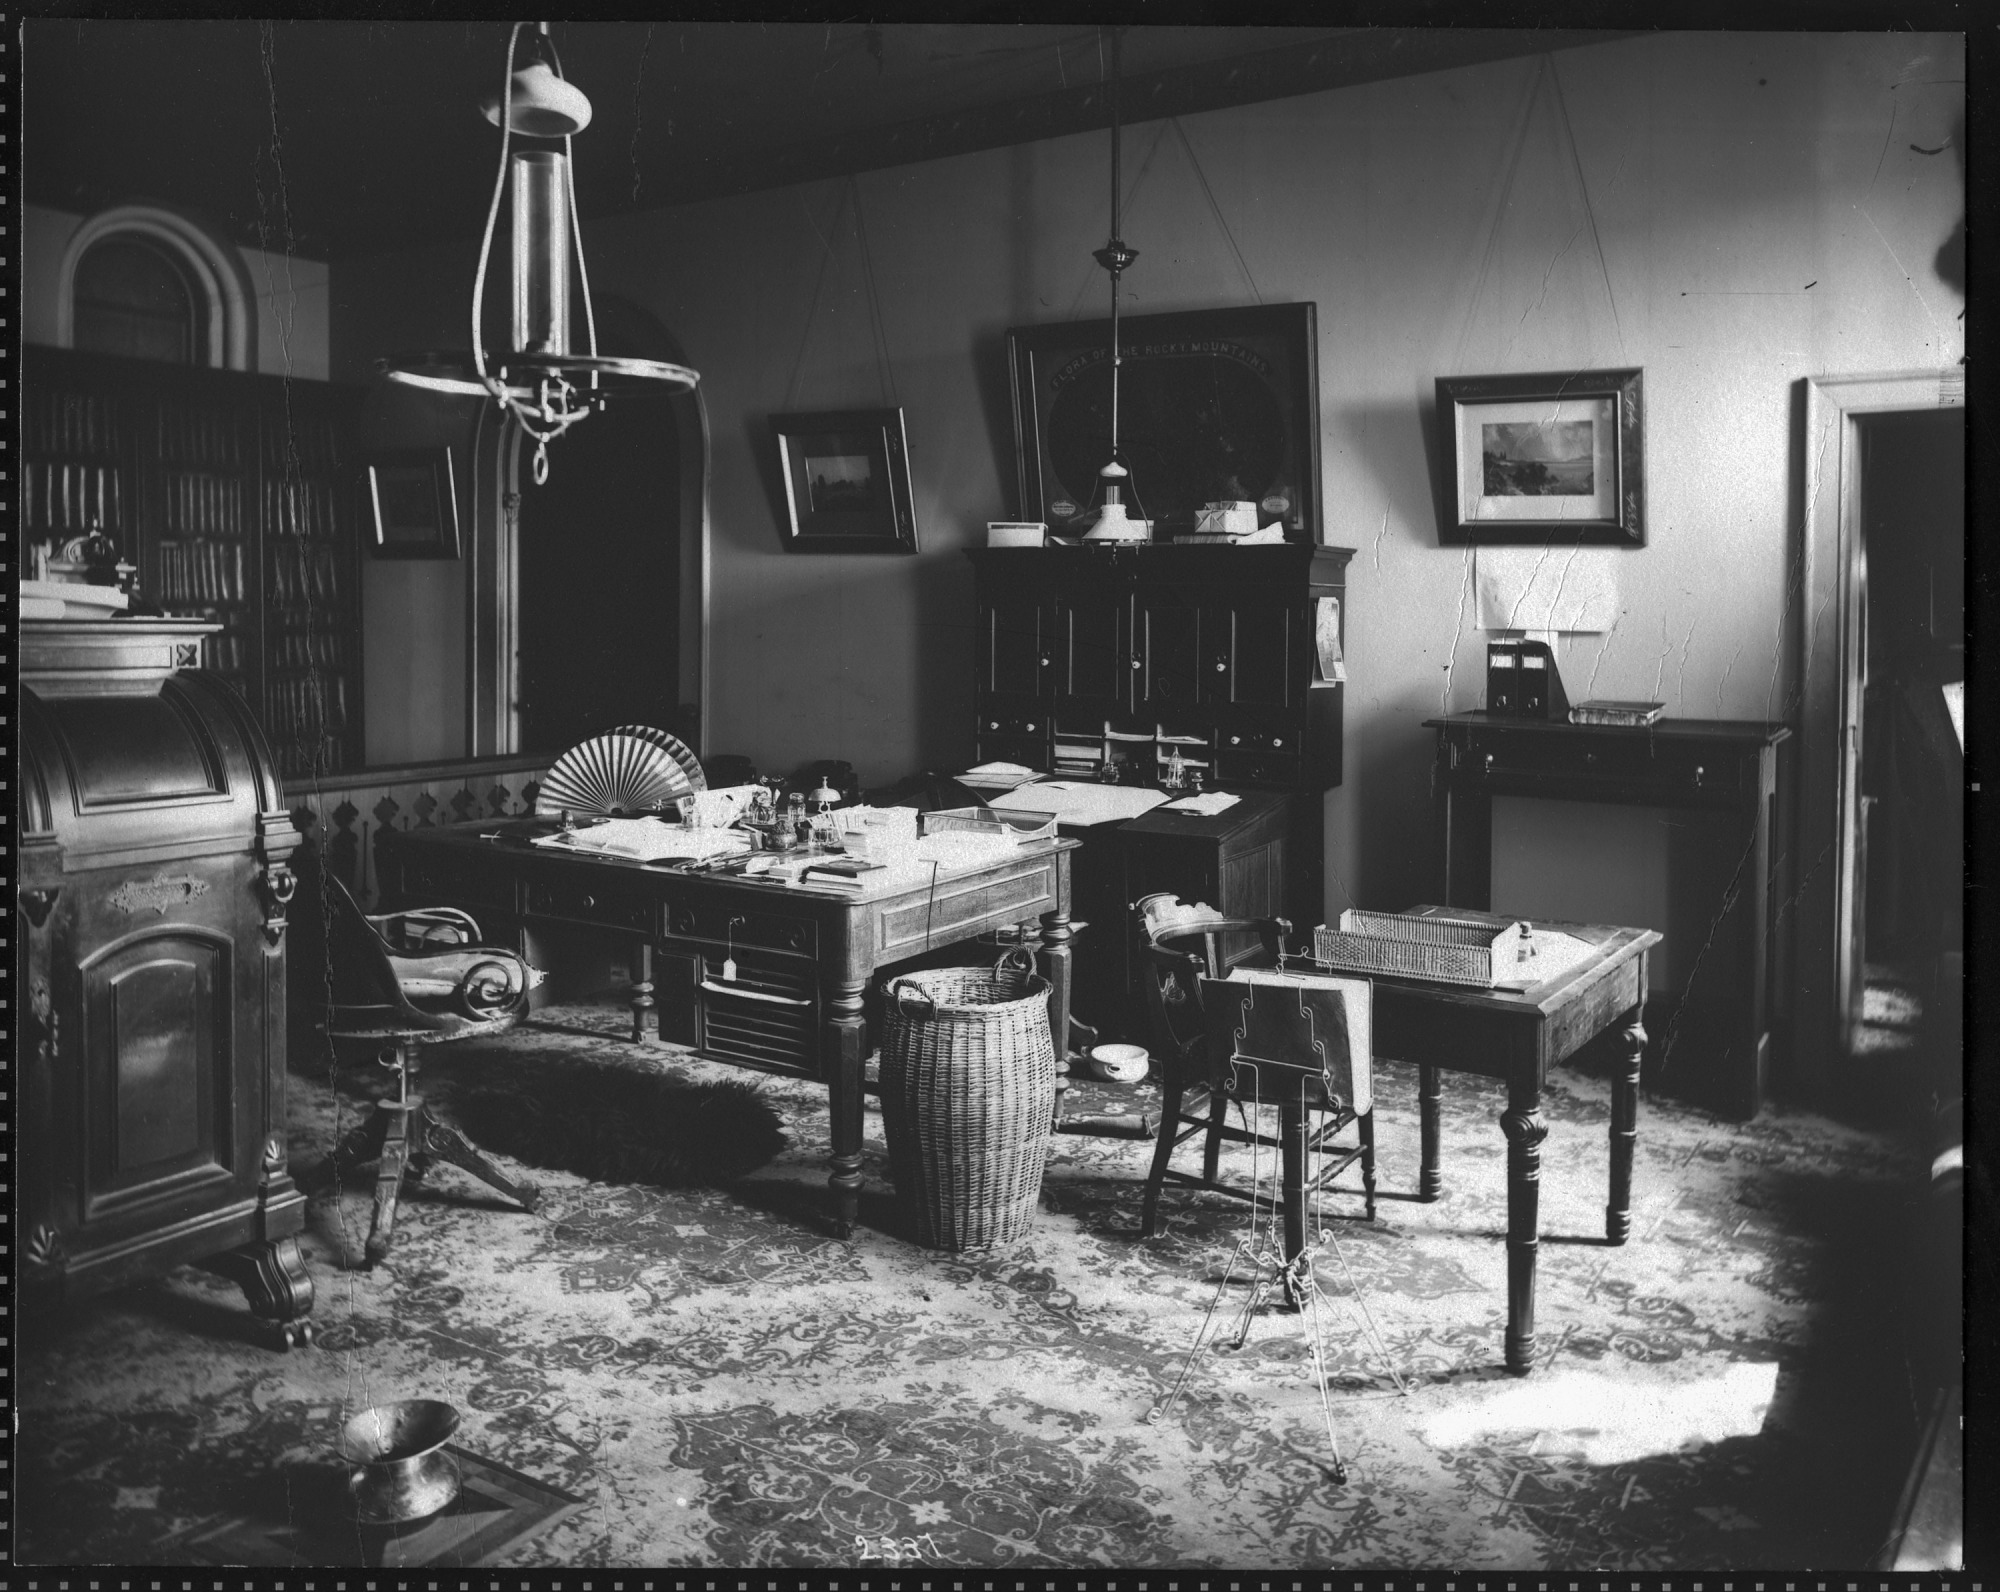 Image shows Spencer Fullerton Baird's office and desk, by Thomas Smillie, 1878. Smithsonian Institution Archives, negative number 2002-10672.